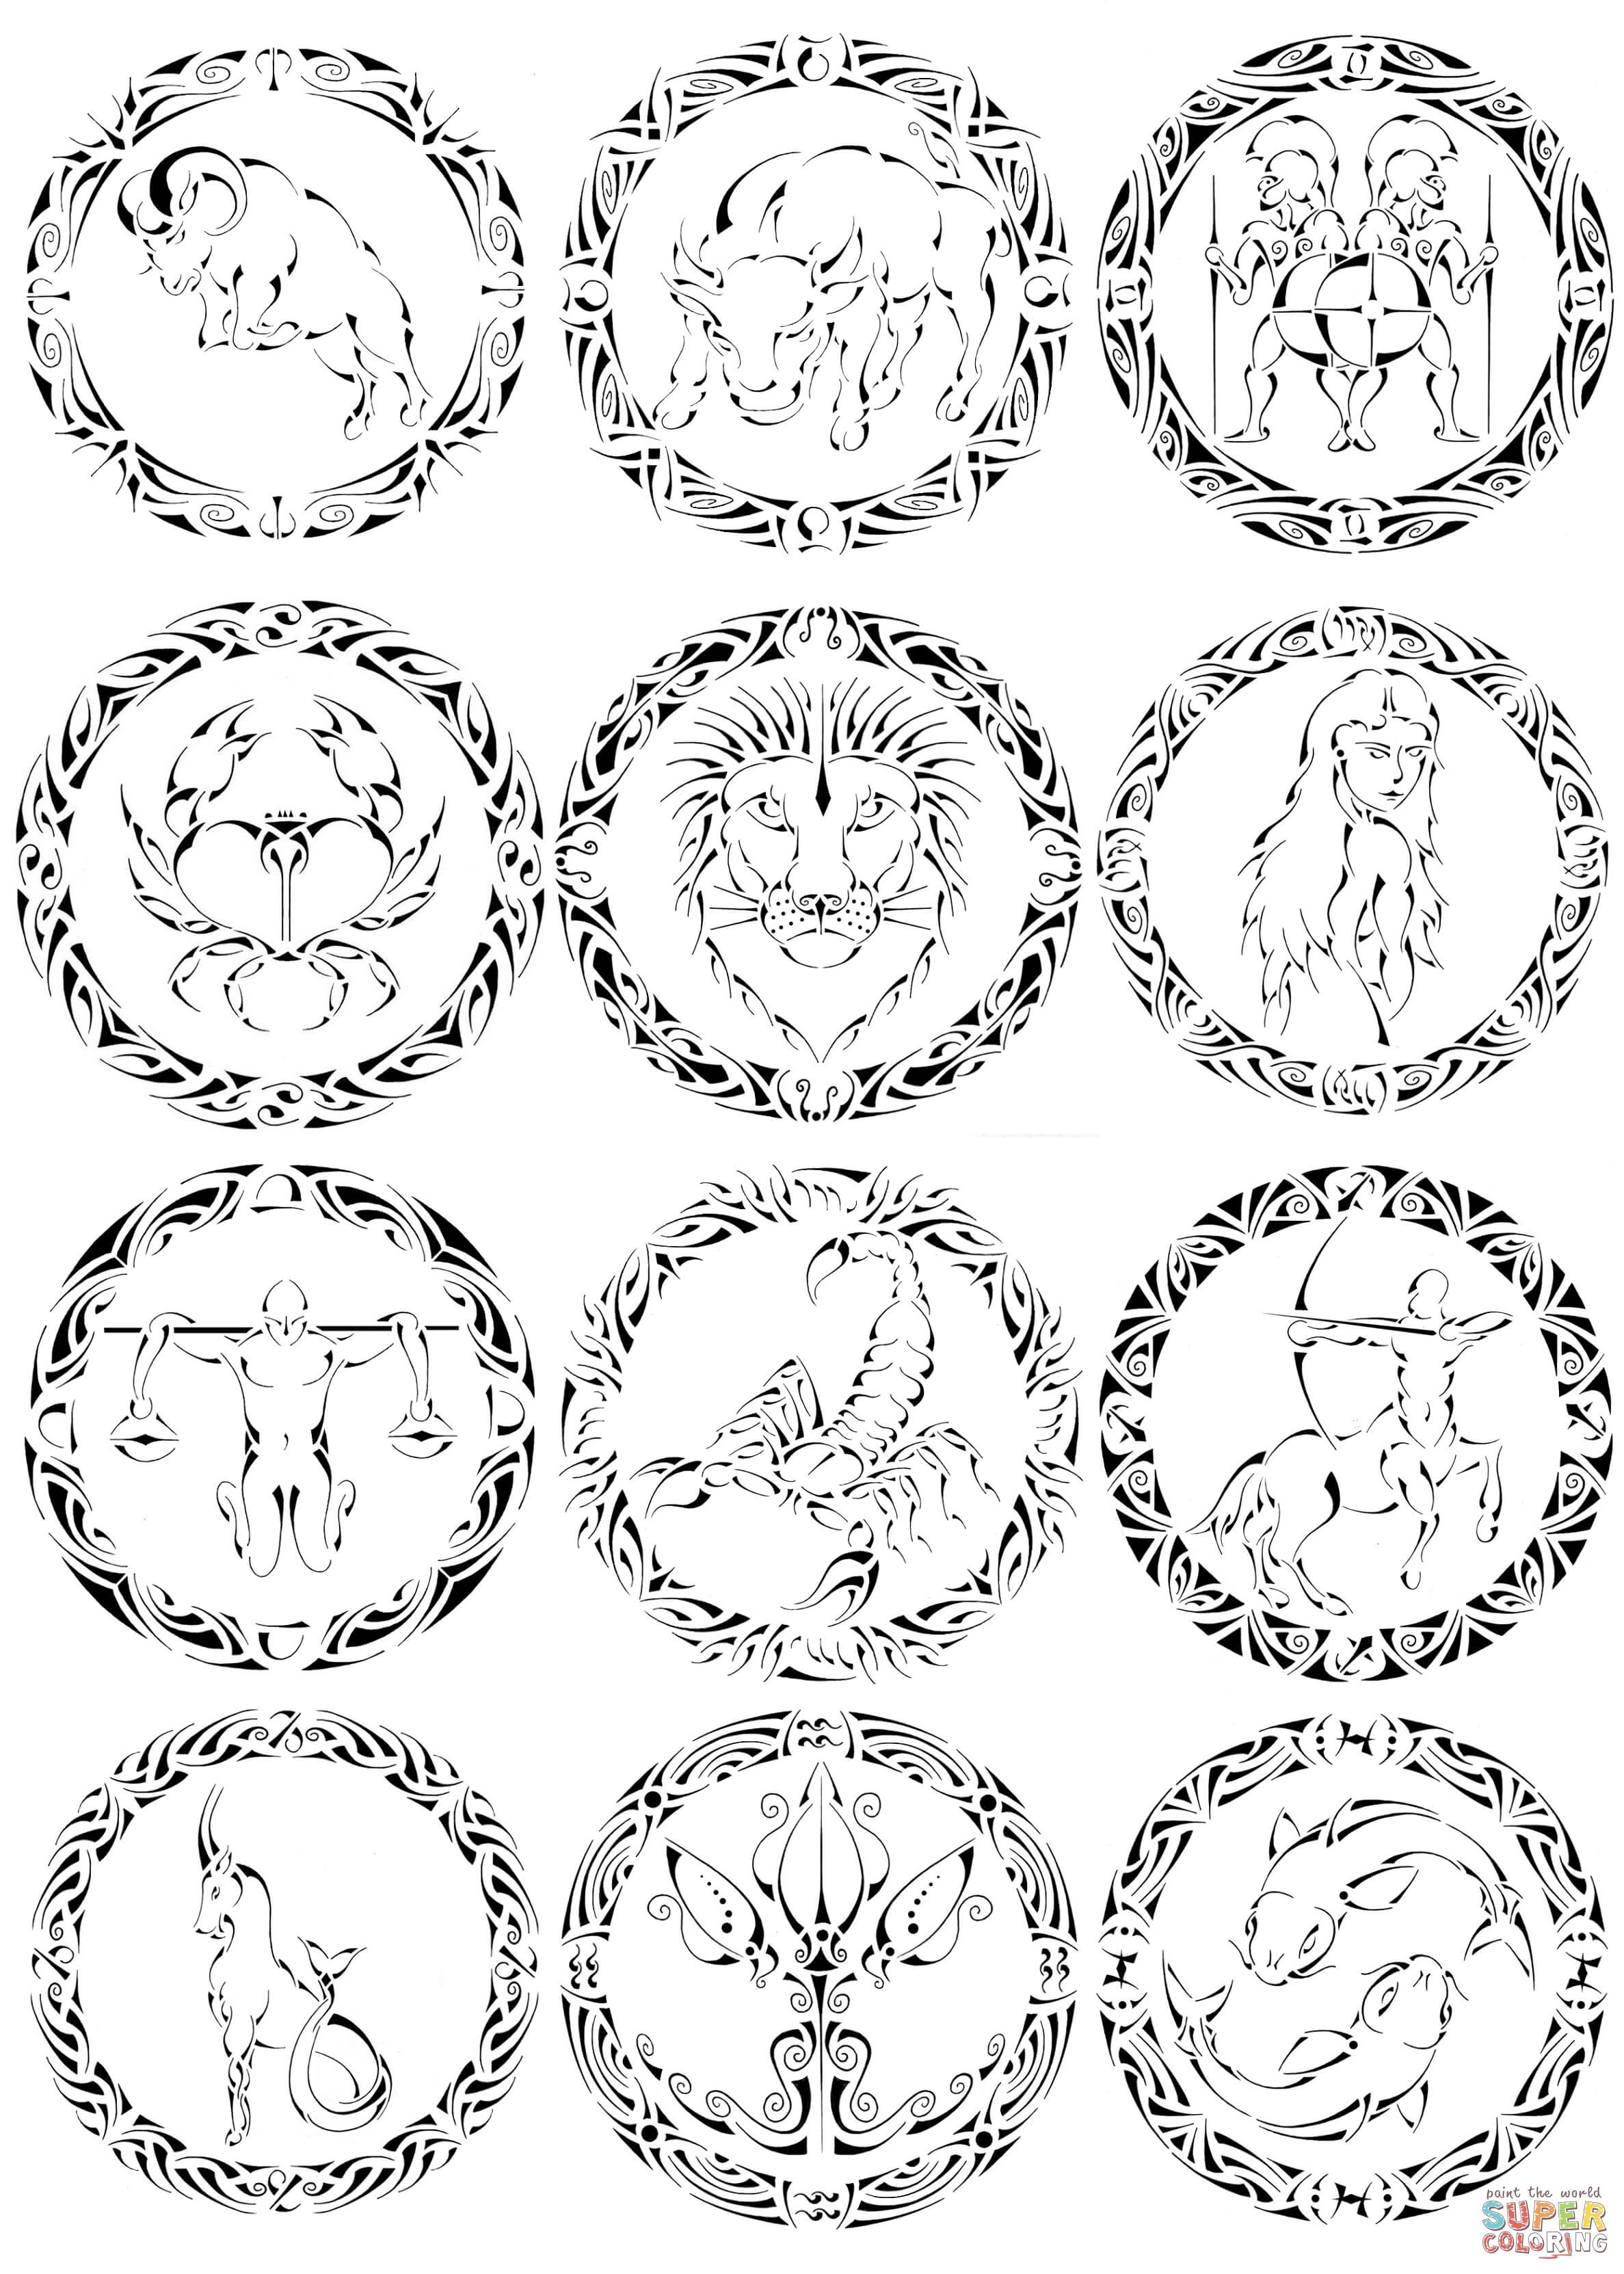 zodiac signs coloring pages signs of the zodiac coloring pages to download and print signs coloring pages zodiac